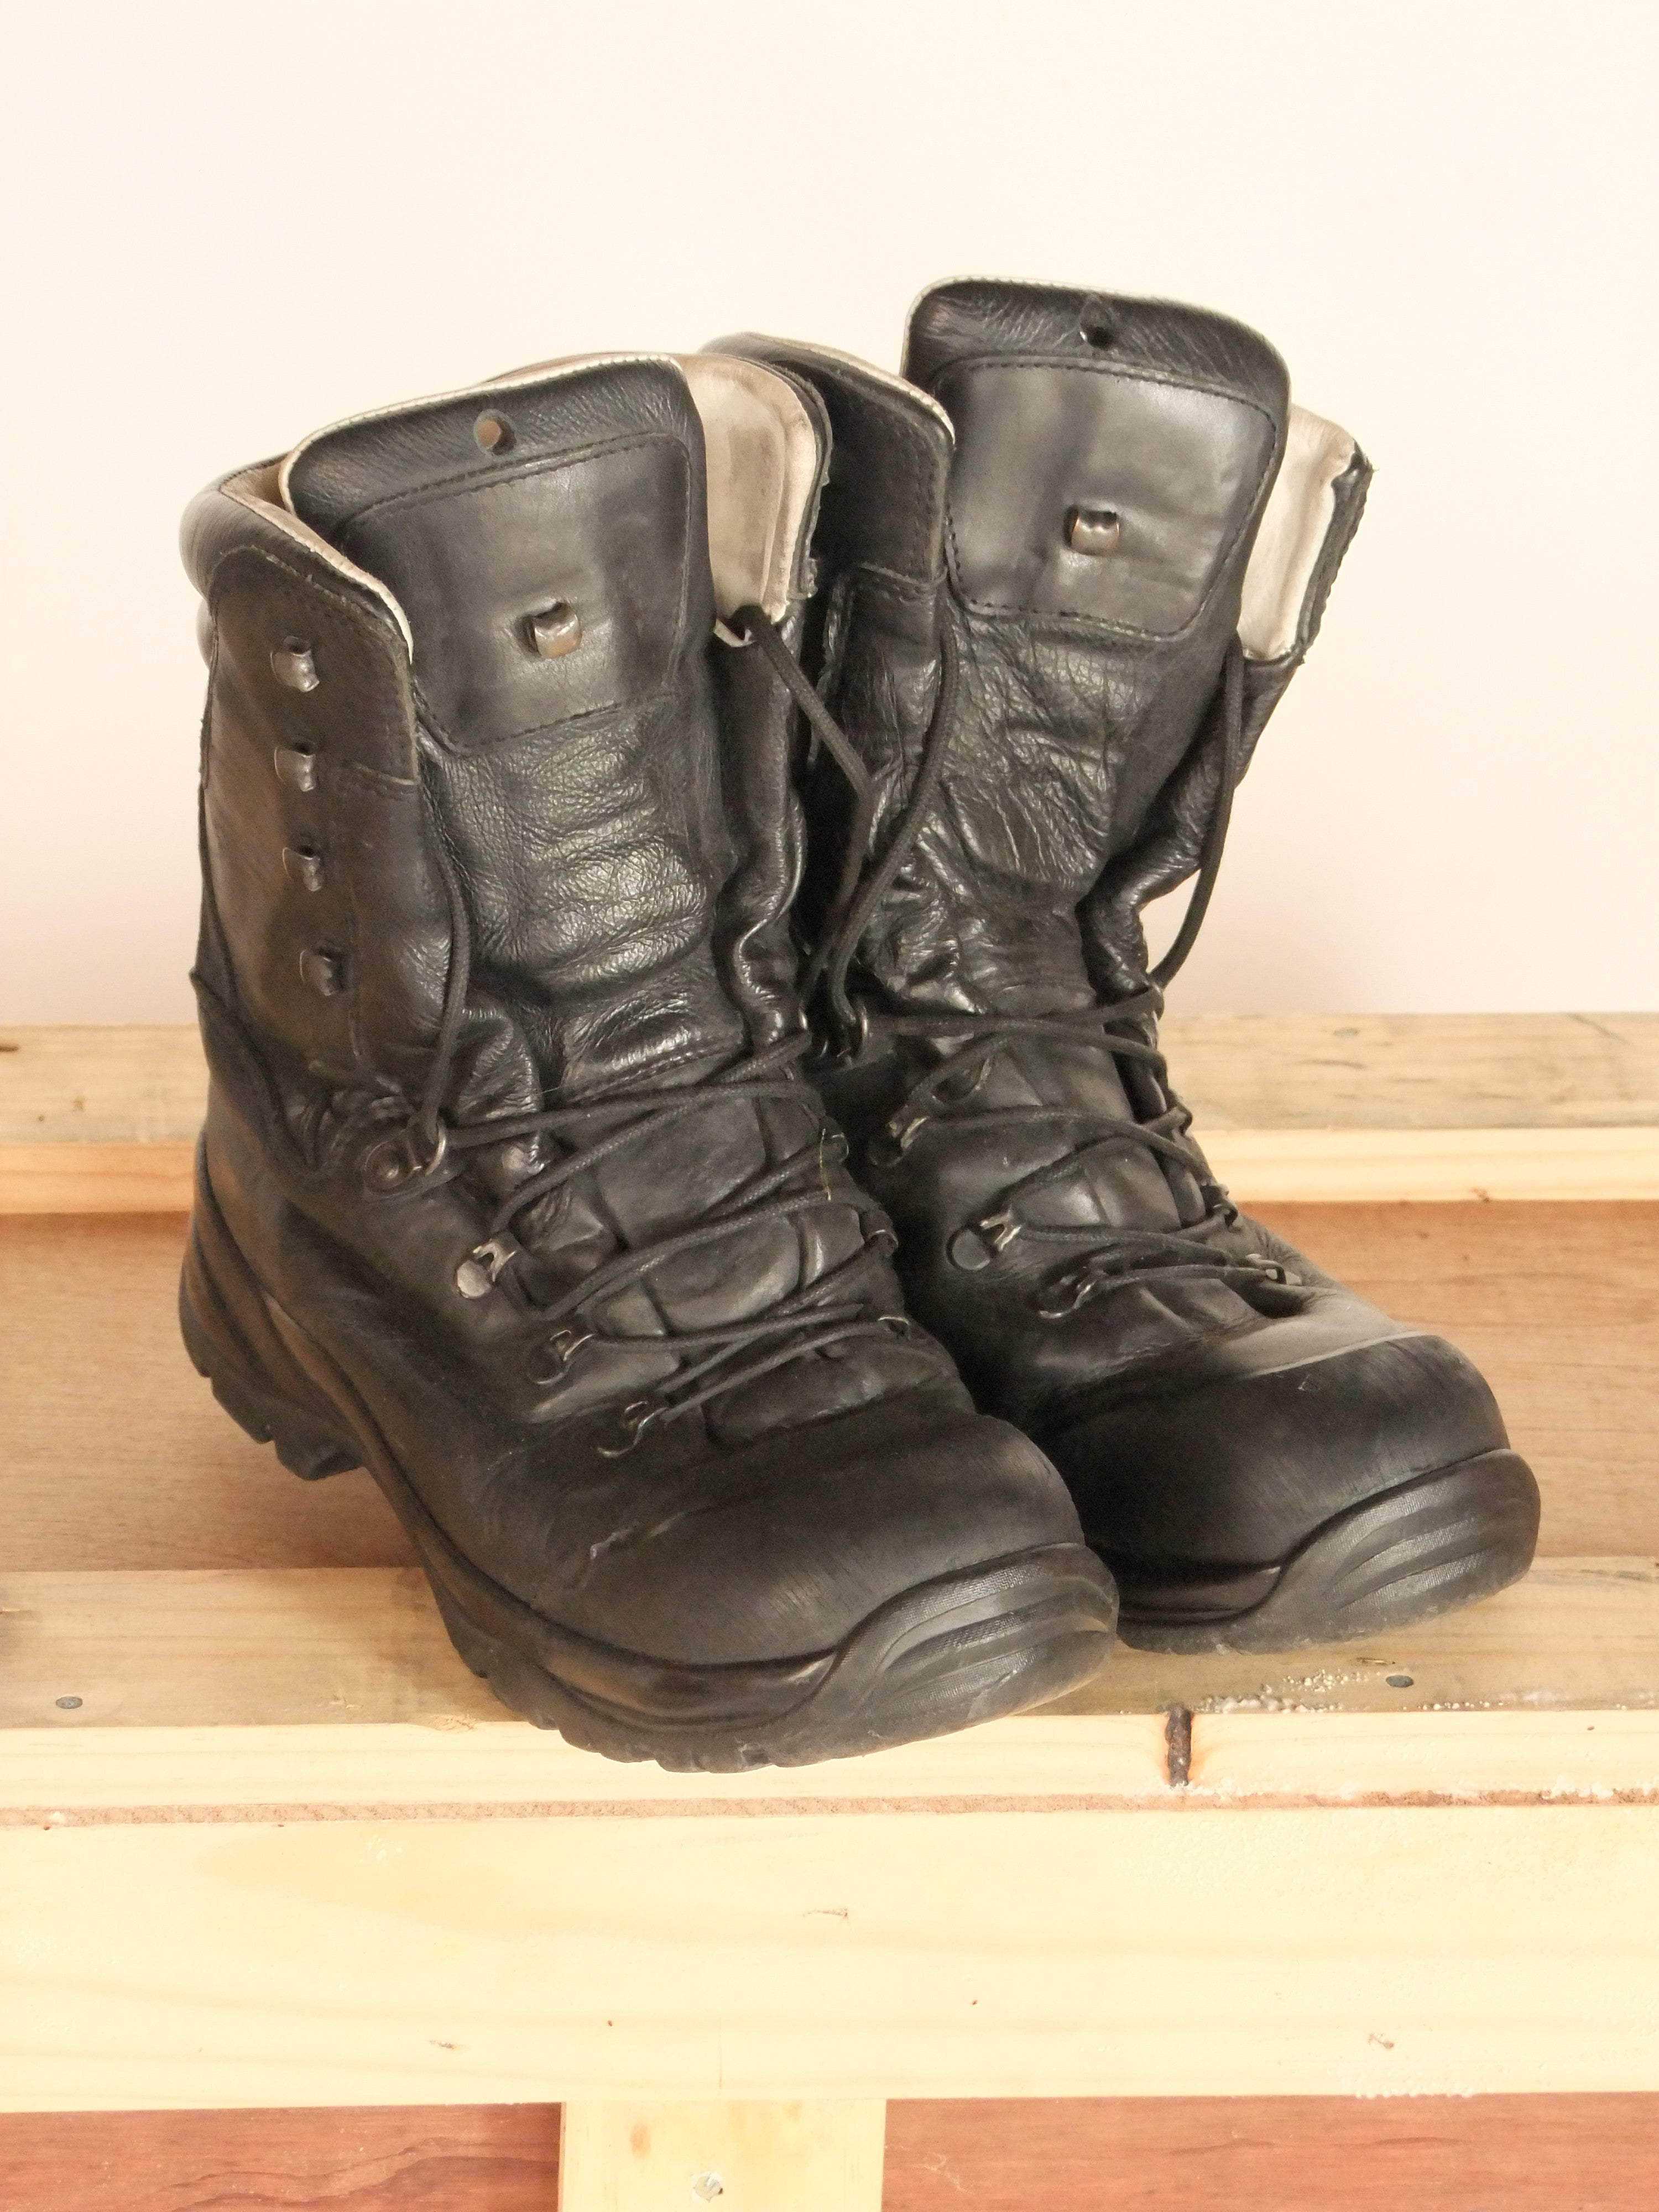 German army issue steel toe cap boot.